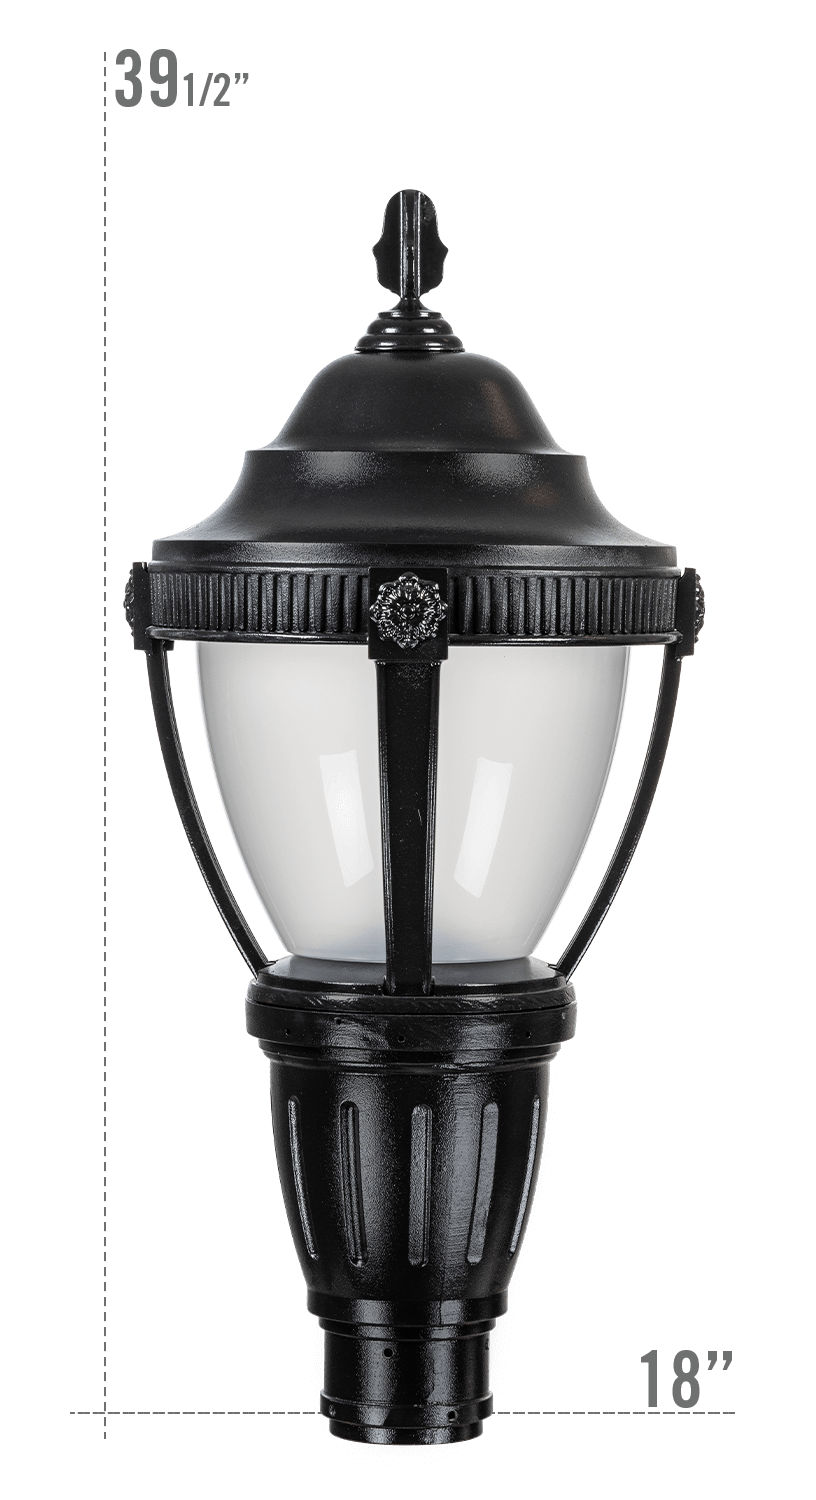 AUGUSTA LED LUMINAIRE WITH KEYWEST FITTER FROSTED GLOBE